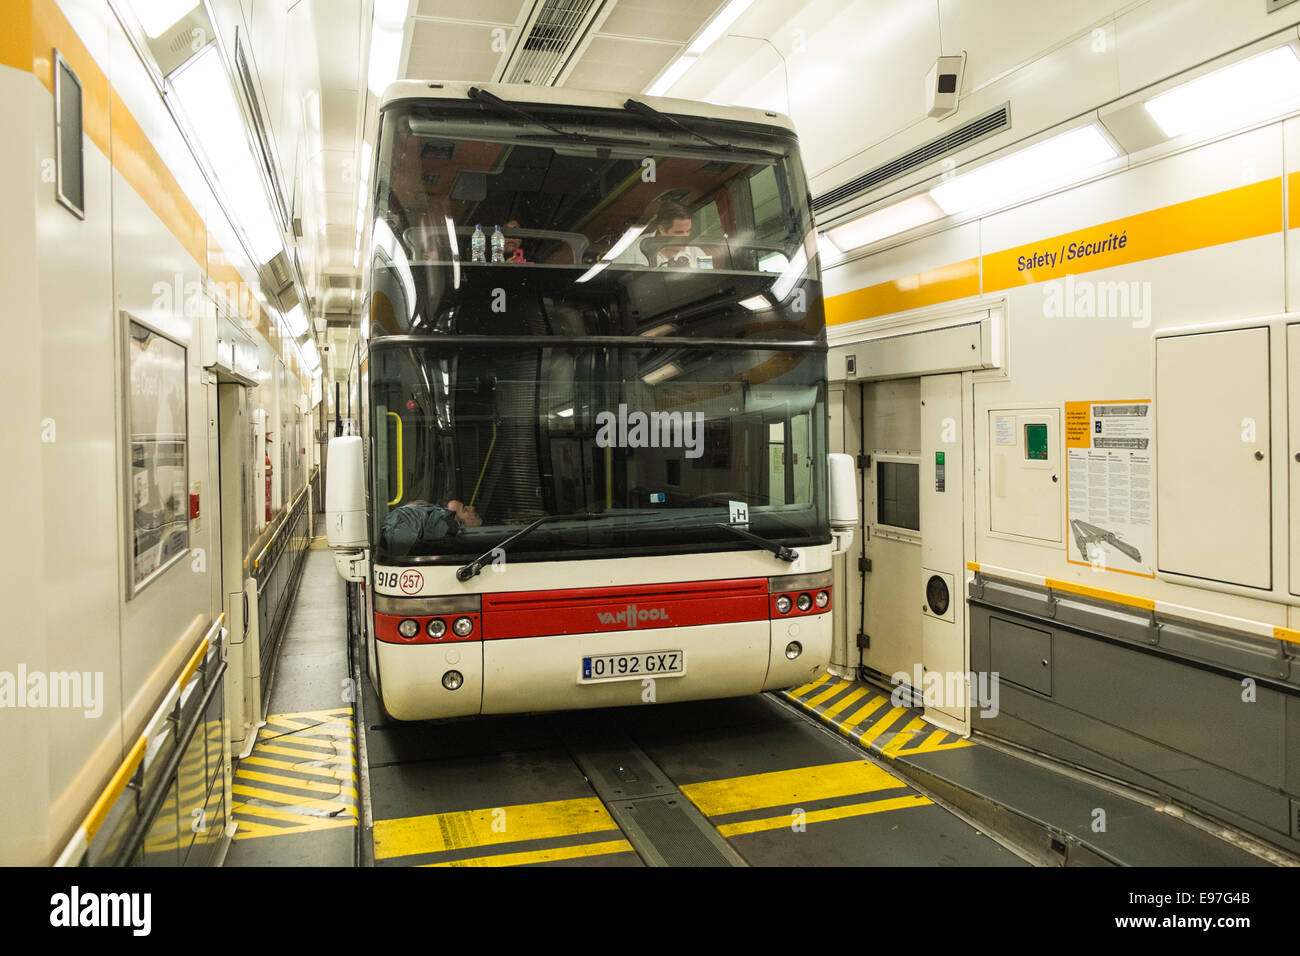 tour bus on eurotunnel between france and england stock photo royalty free image 74539707 alamy. Black Bedroom Furniture Sets. Home Design Ideas